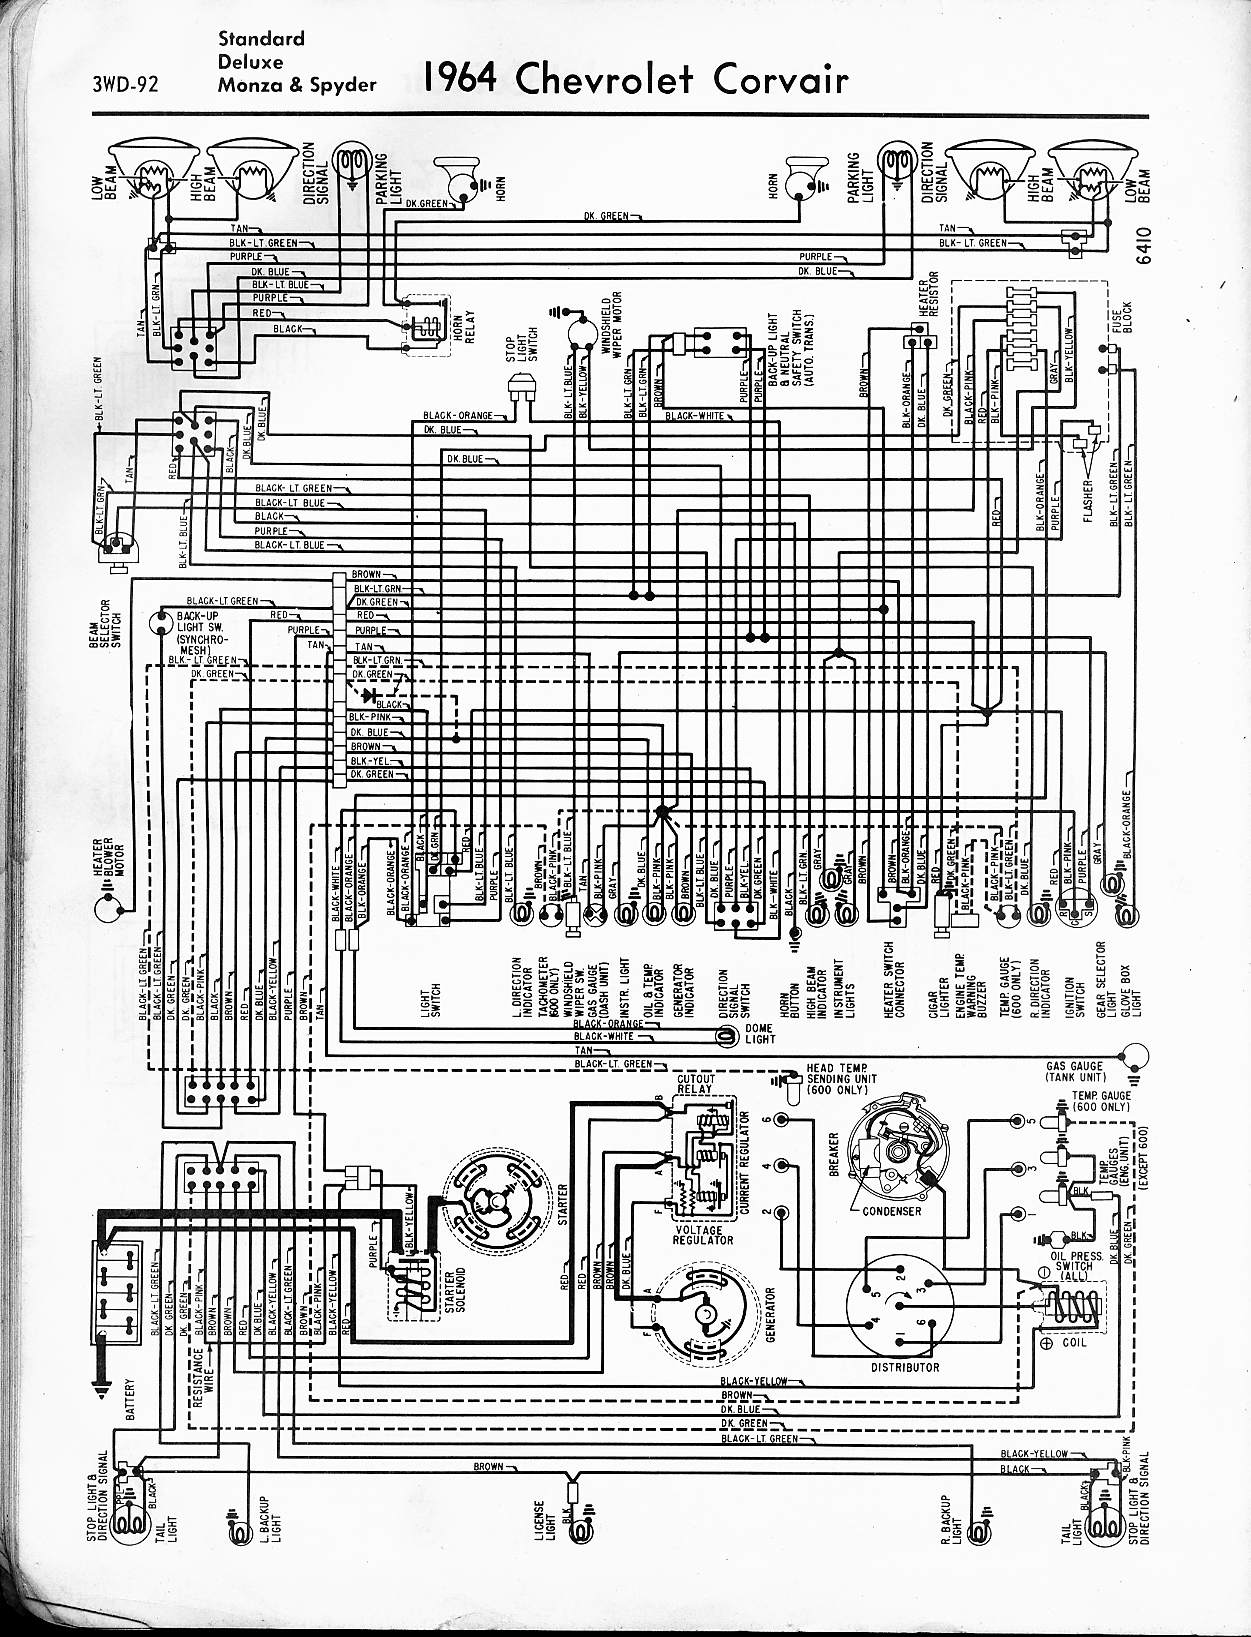 57 65 Chevy Wiring Diagrams Site 1964 Corvair Std Deluxe Monza Spyder